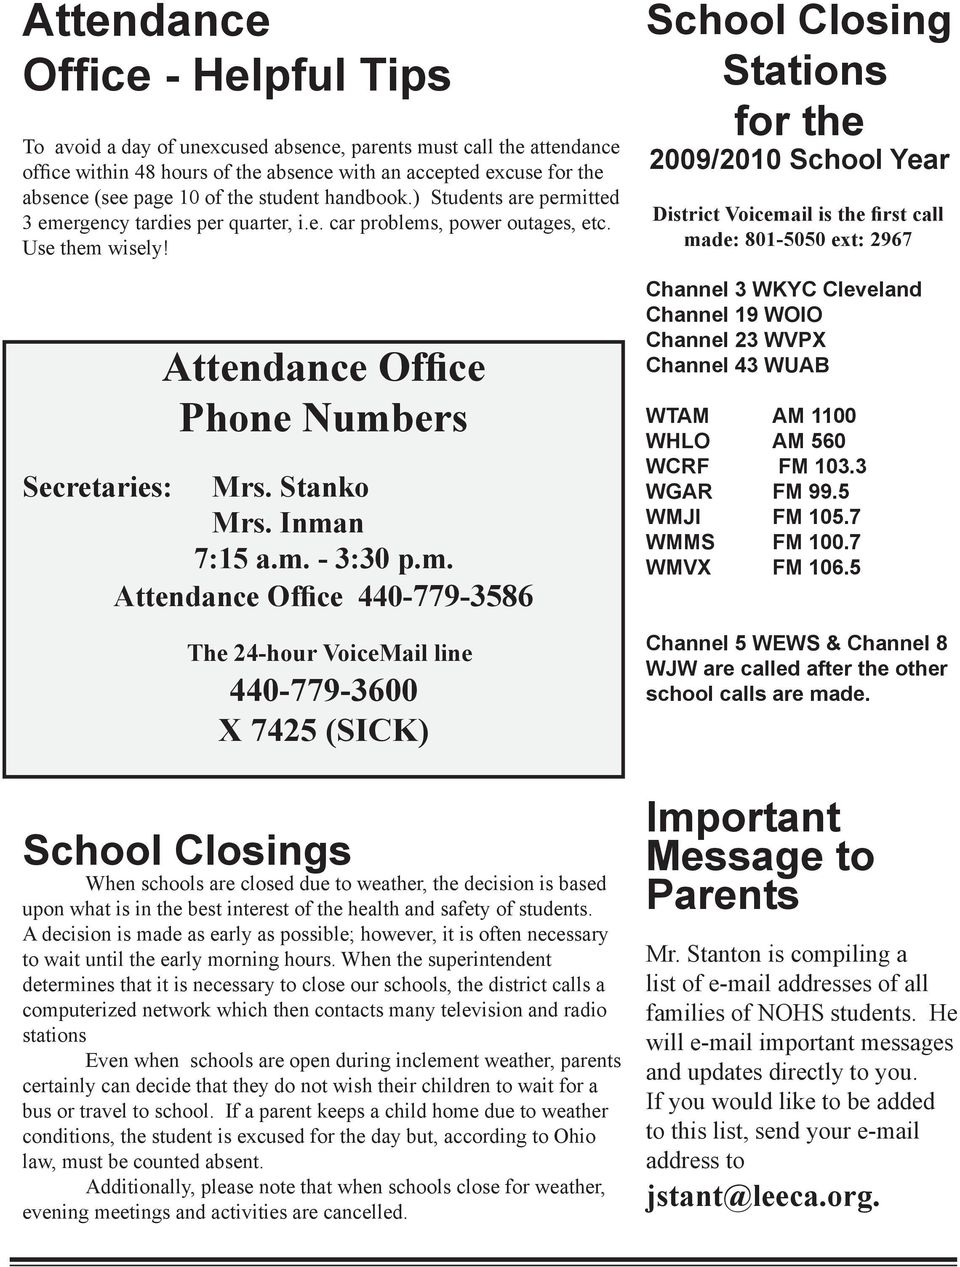 Inman 7:15 a.m. - 3:30 p.m. Attendance Office 440-779-3586 The 24-hour VoiceMail line 440-779-3600 X 7425 (SICK) School Closings When schools are closed due to weather, the decision is based upon